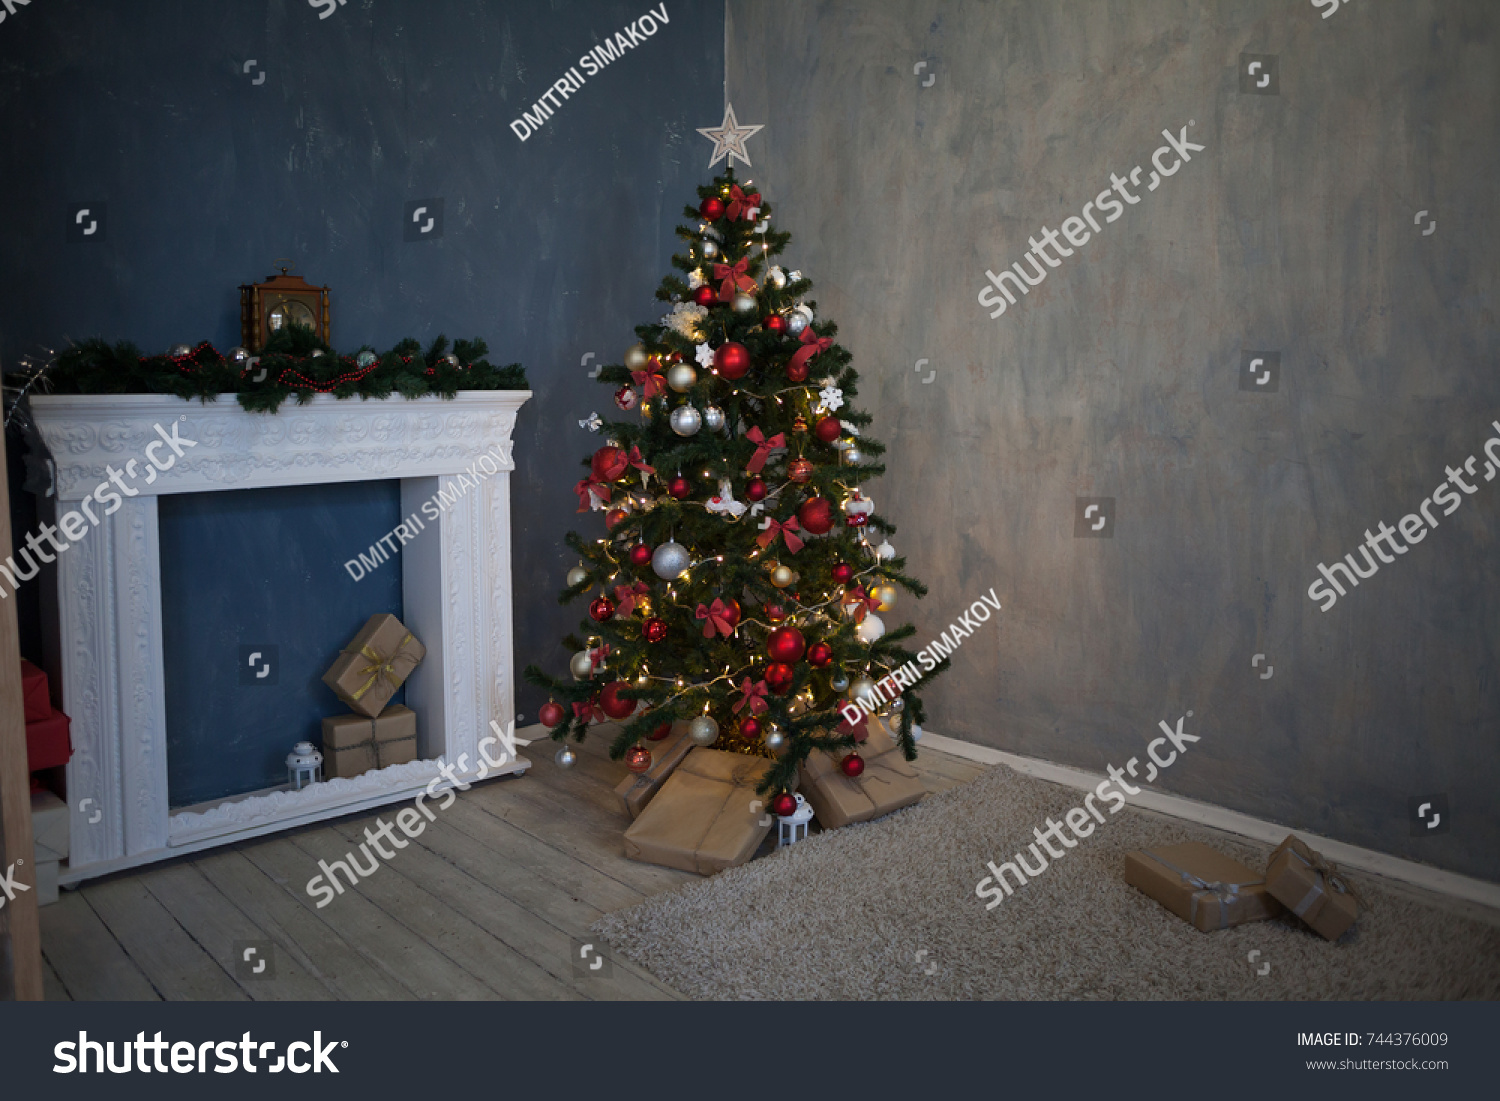 Christmas great tree with presents and lights new photo